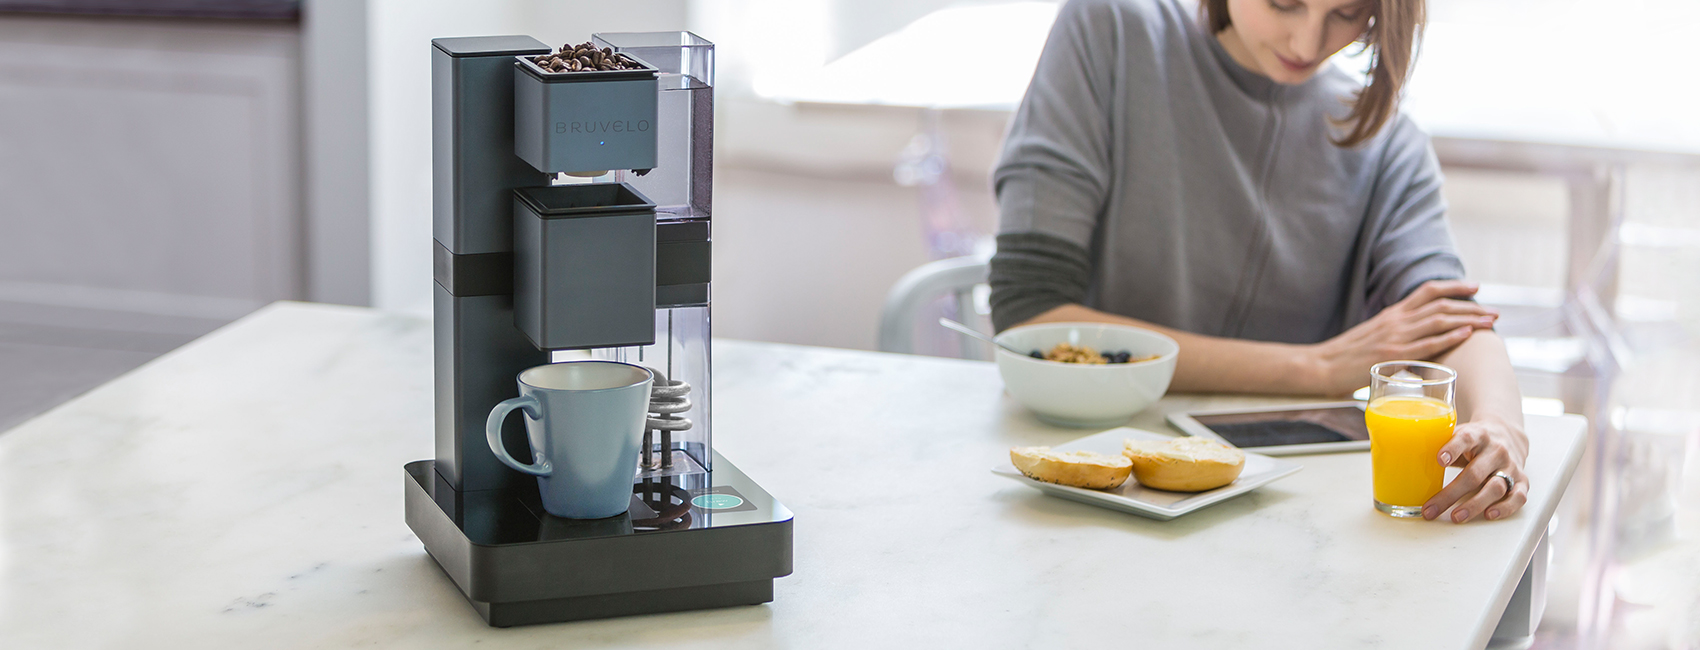 Bruvelo, a connected coffeemaker with custom embedded display